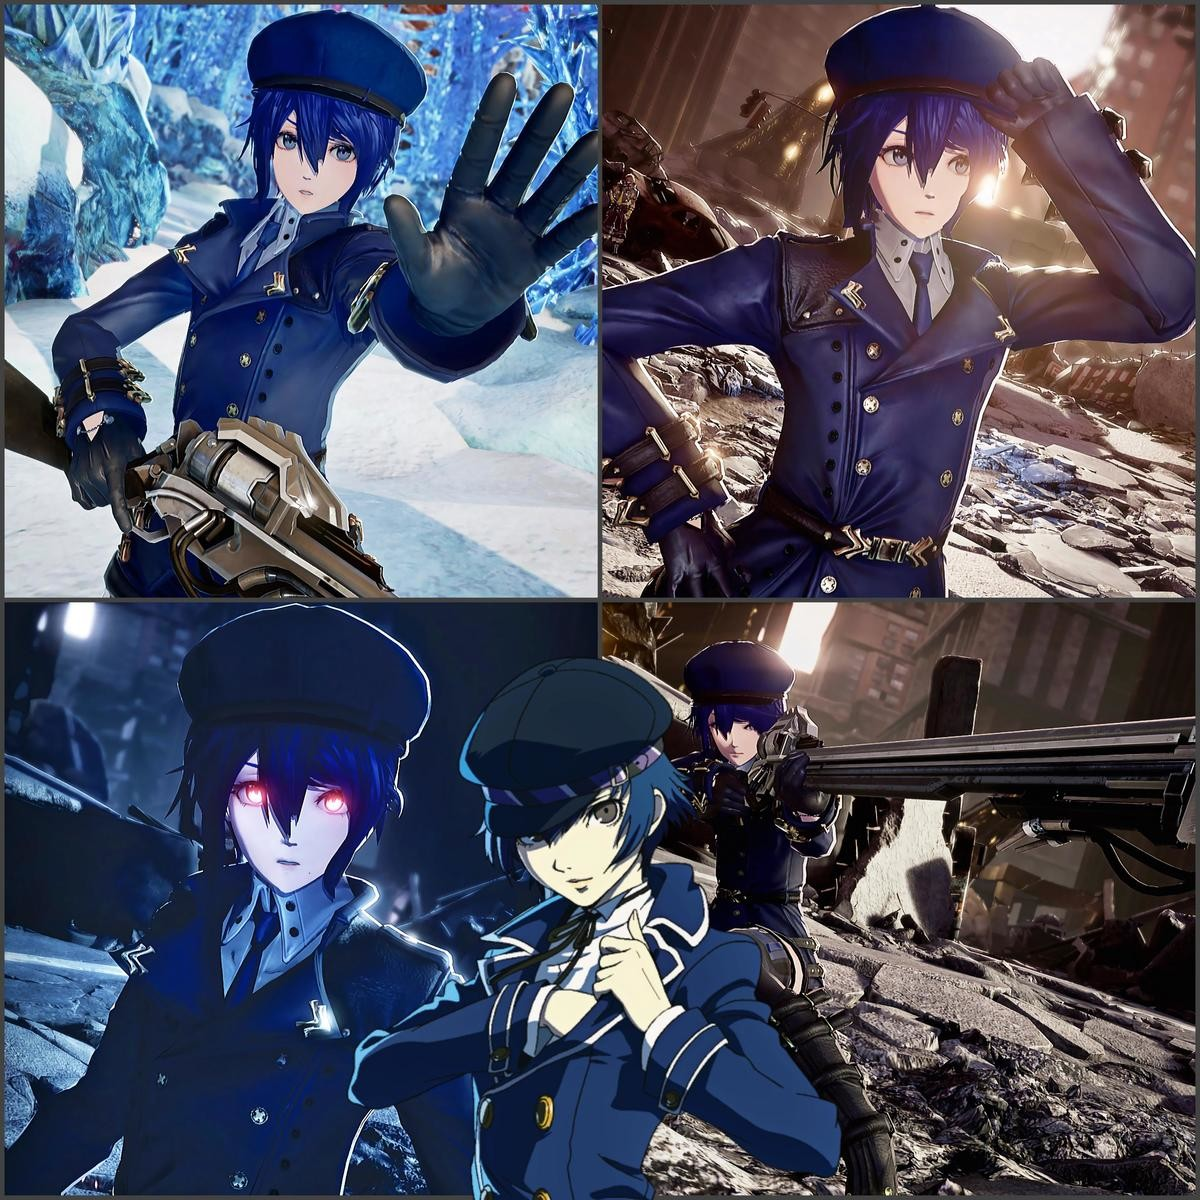 Creating naoto on game. .. Blue hair tomboys are my weakness Tsugumi from Nisekoi